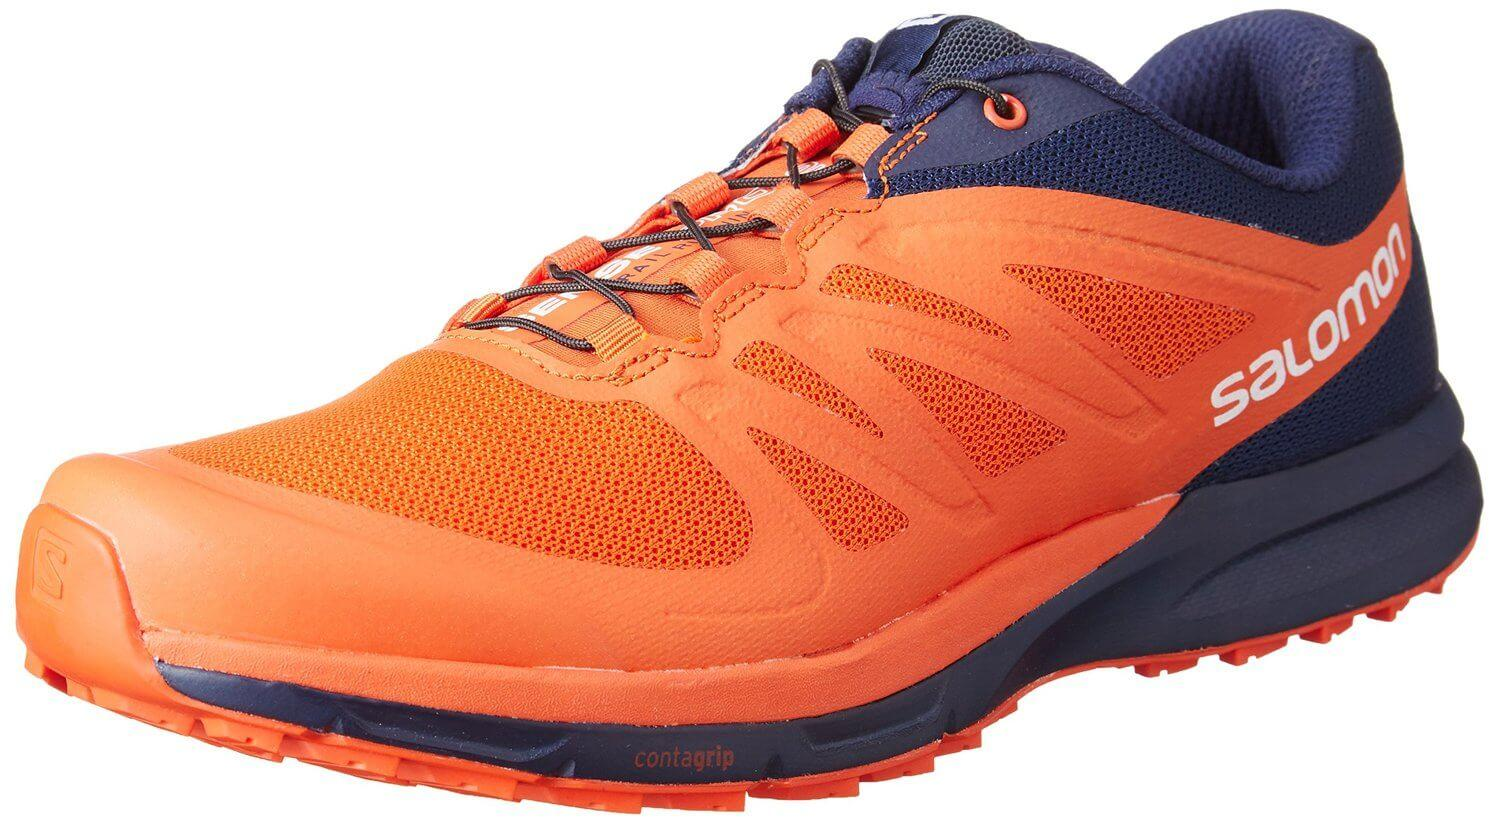 Despite having a minimalist design, the Salomon Sense Pro 2 is meant for trail running.